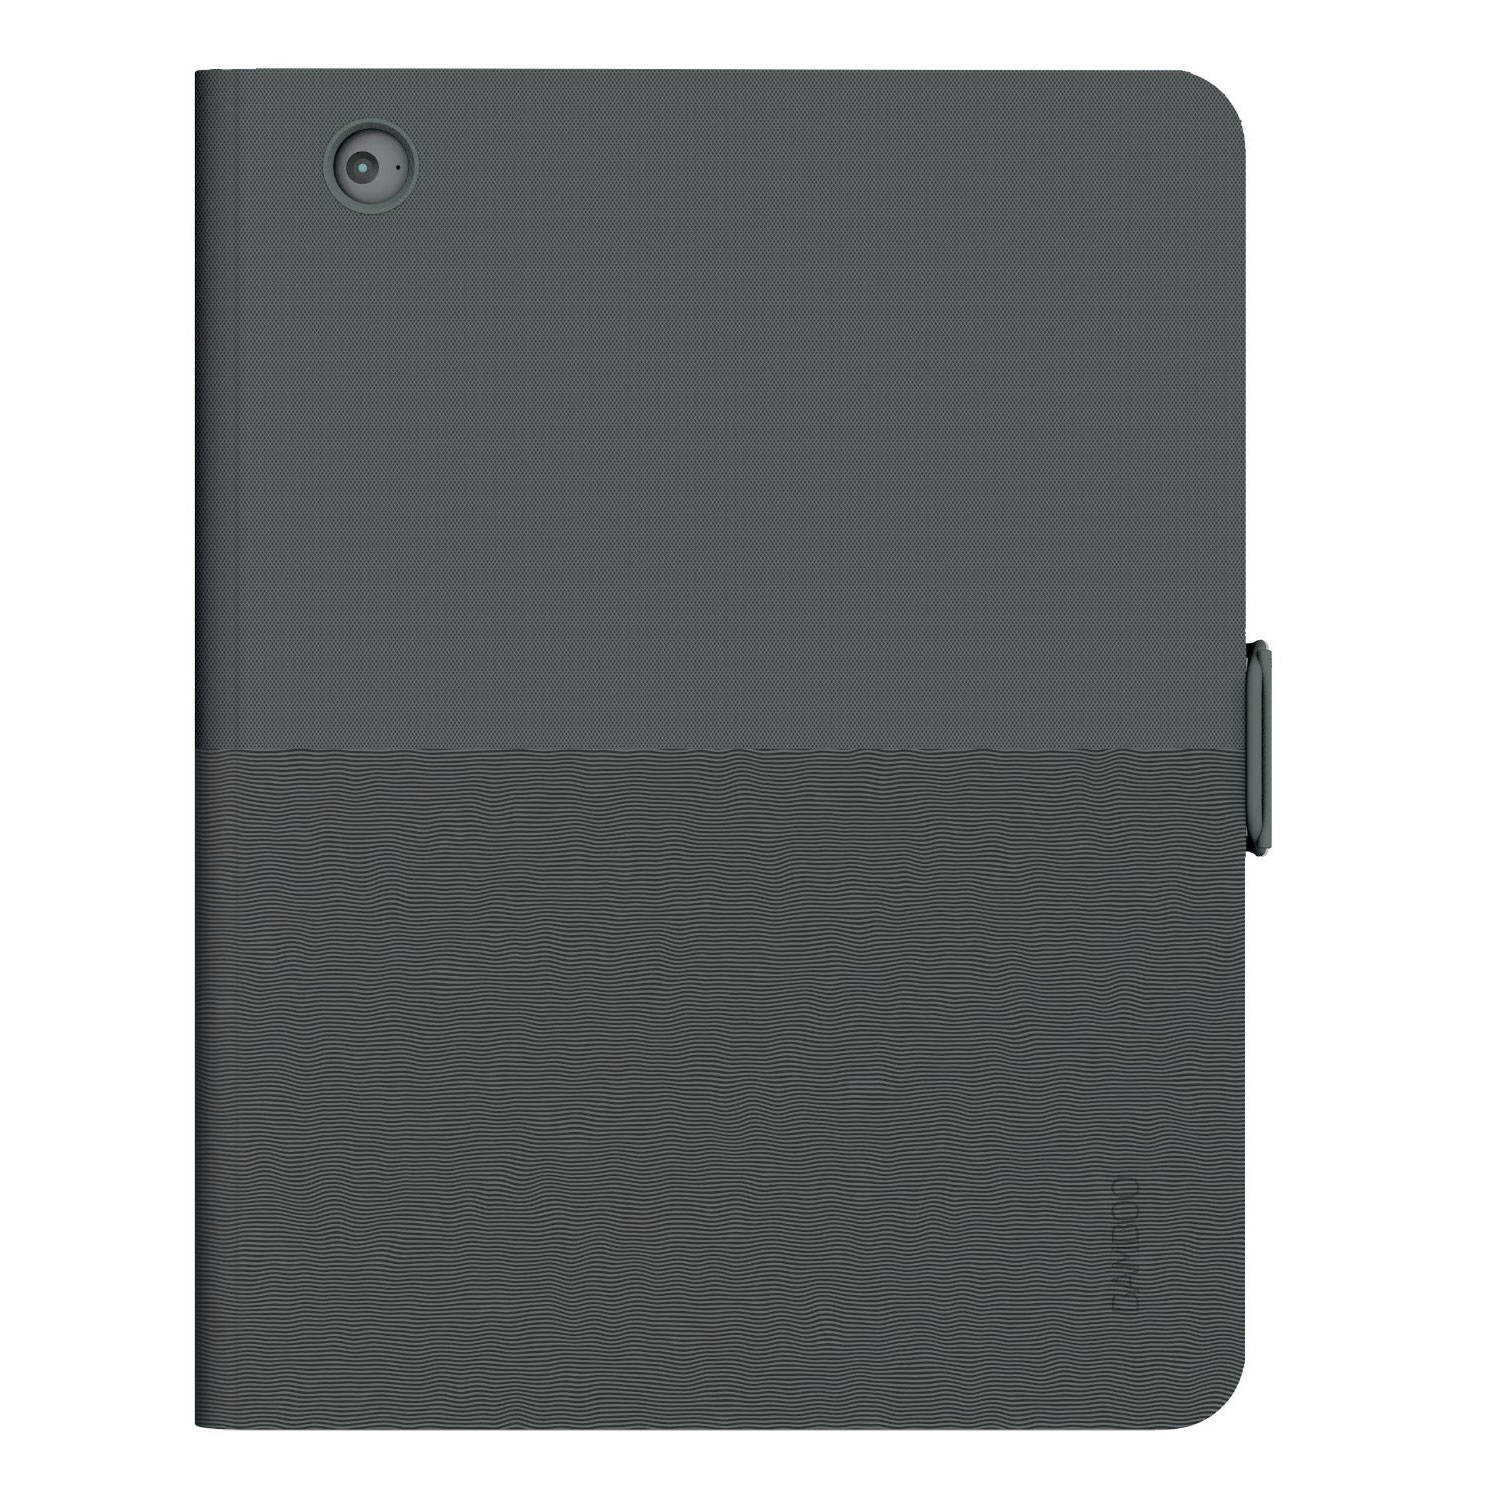 Wacom Bamboo Spark Snap-Fit Digital Notebook iPad Air 2 / Air Case